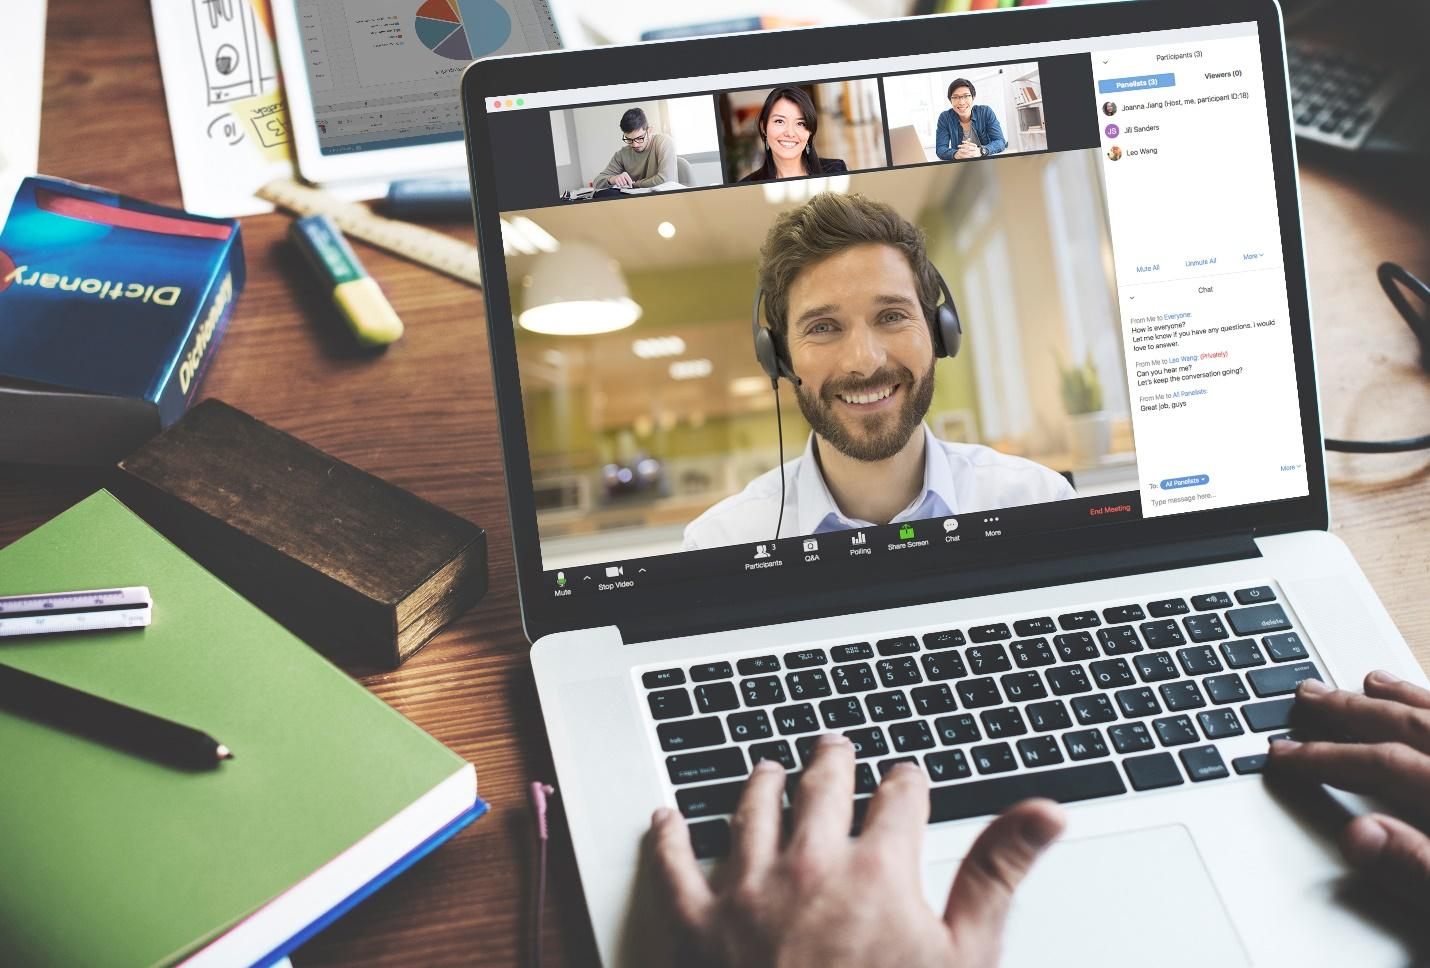 Video Conferencing Allows Remote Workers to Connect